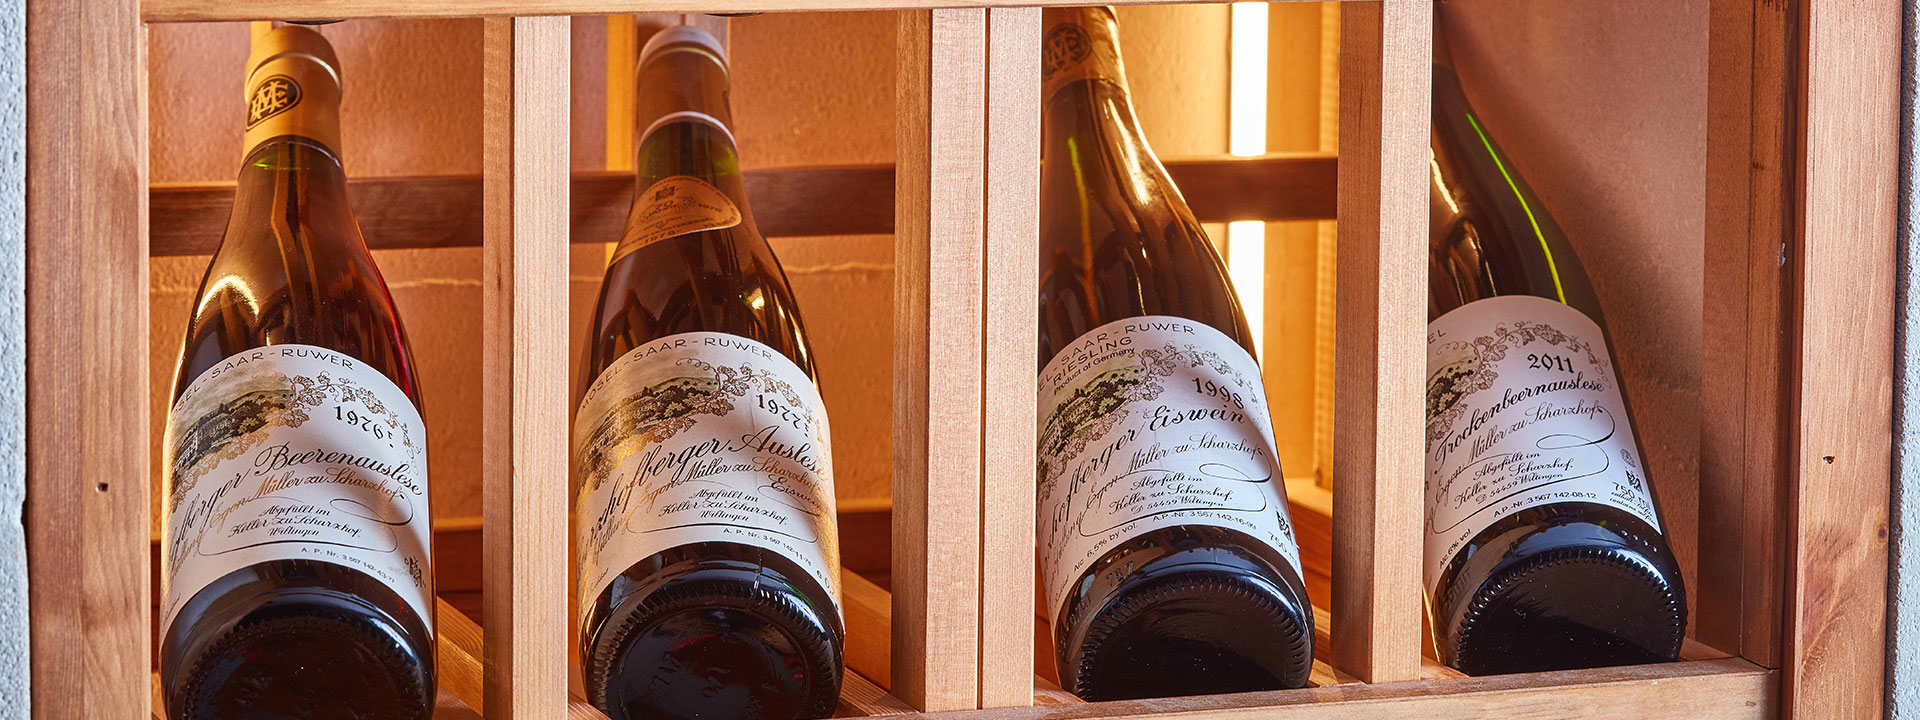 Fine wine in bottles at the Sommelier's Tavle in Hélène Darroze at The Connaught